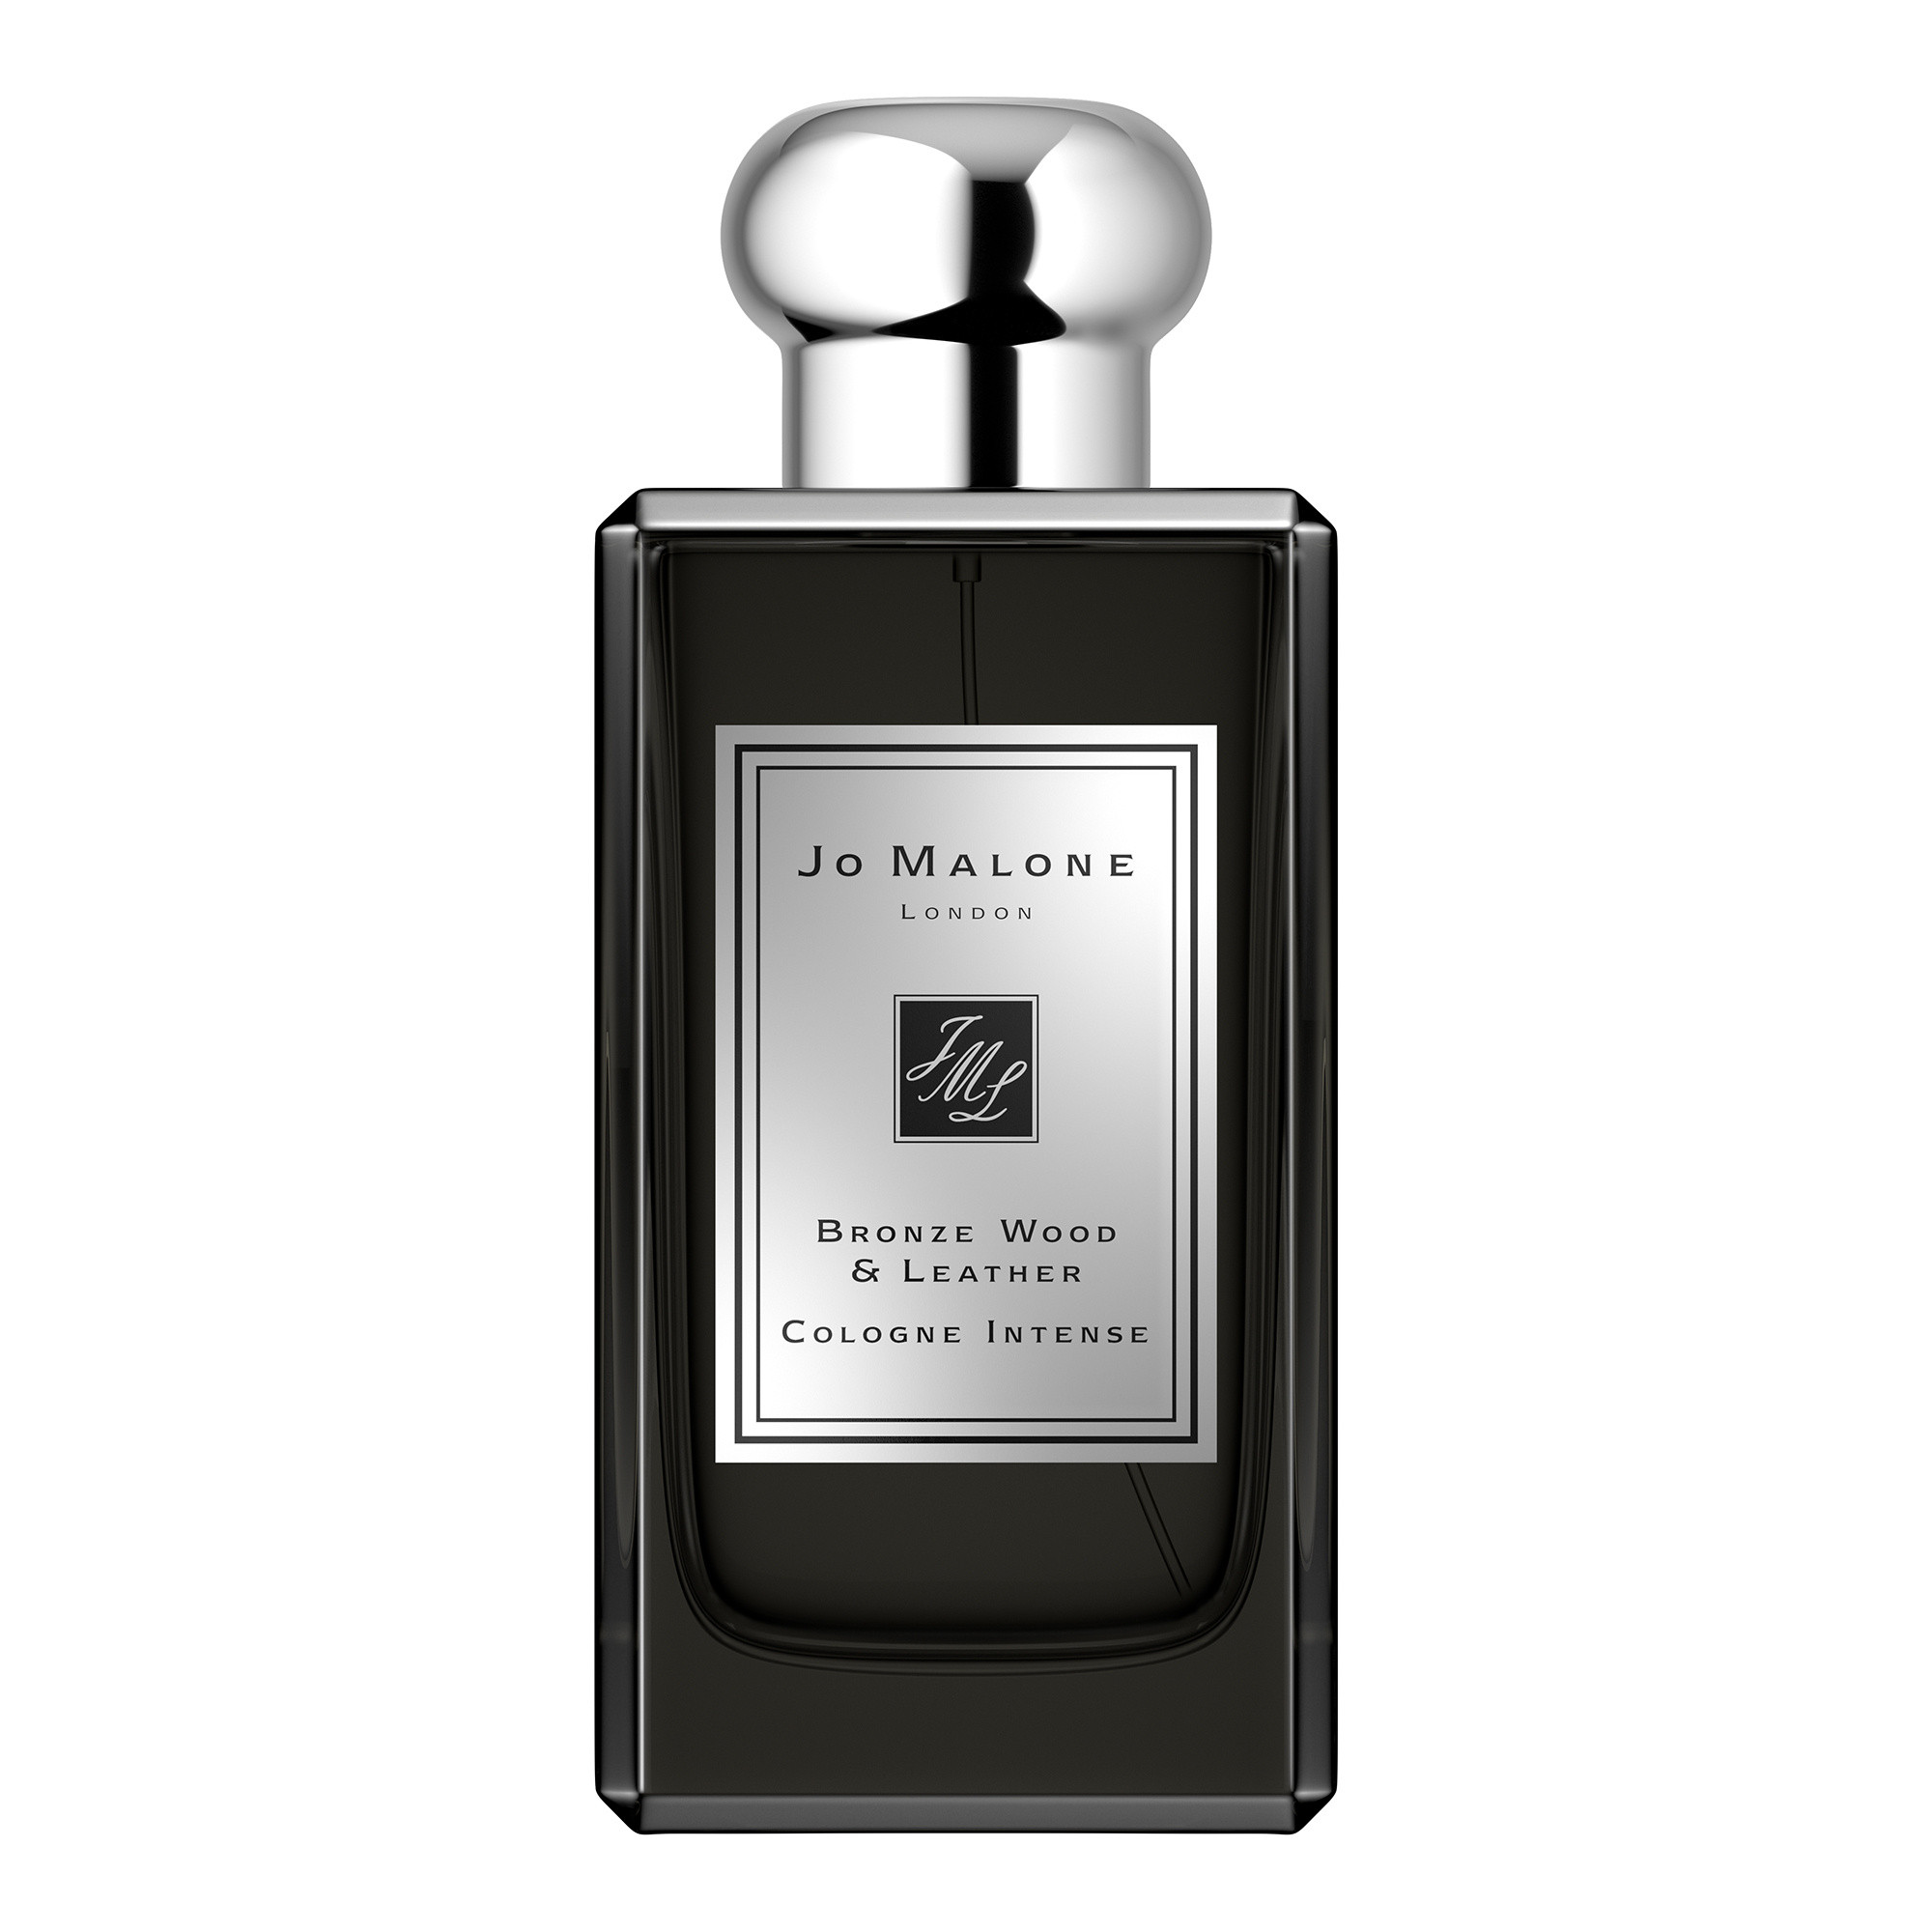 Jo Malone London bronze wood & leather cologne intense 100 ml, Beige, large image number 0